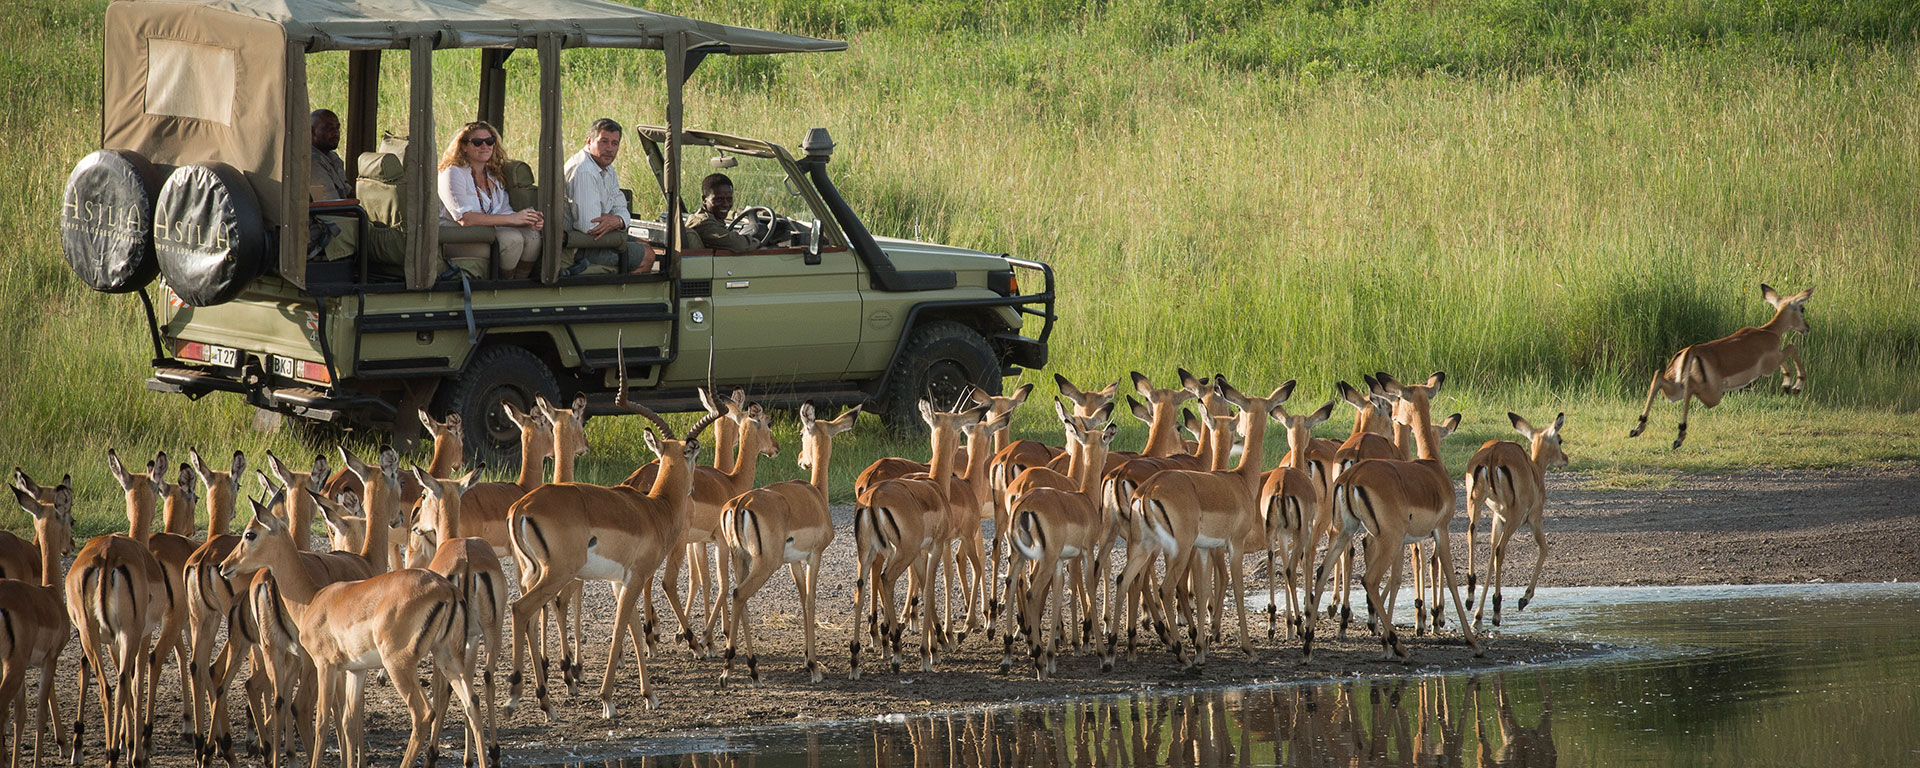 Let your guide know if you need to stop for a rest break on your game drive – he or she will understand and will find a safe spot for you.